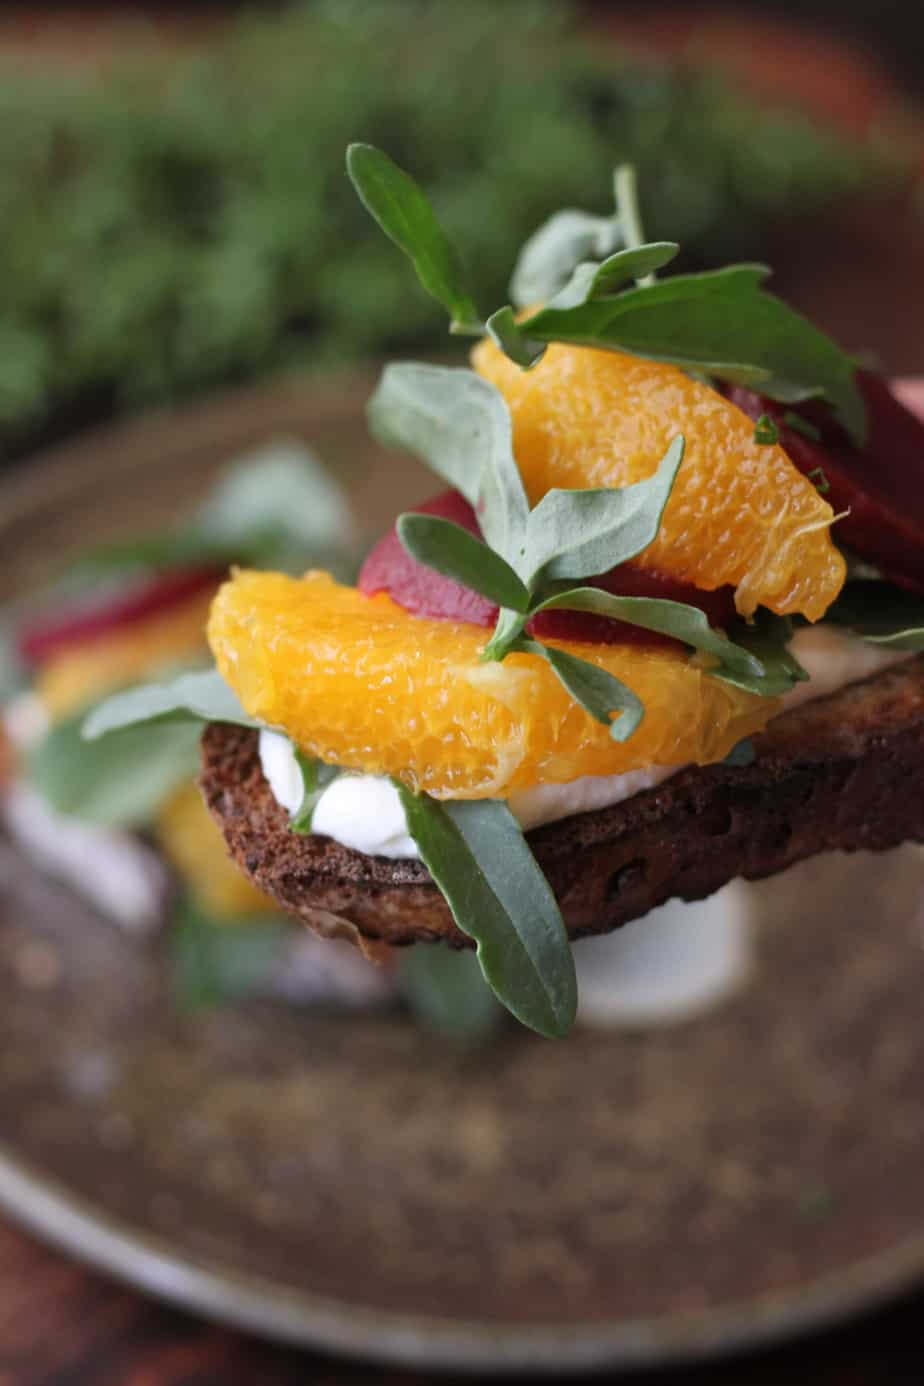 sourdough toast with whipped feta, sliced beets and orange